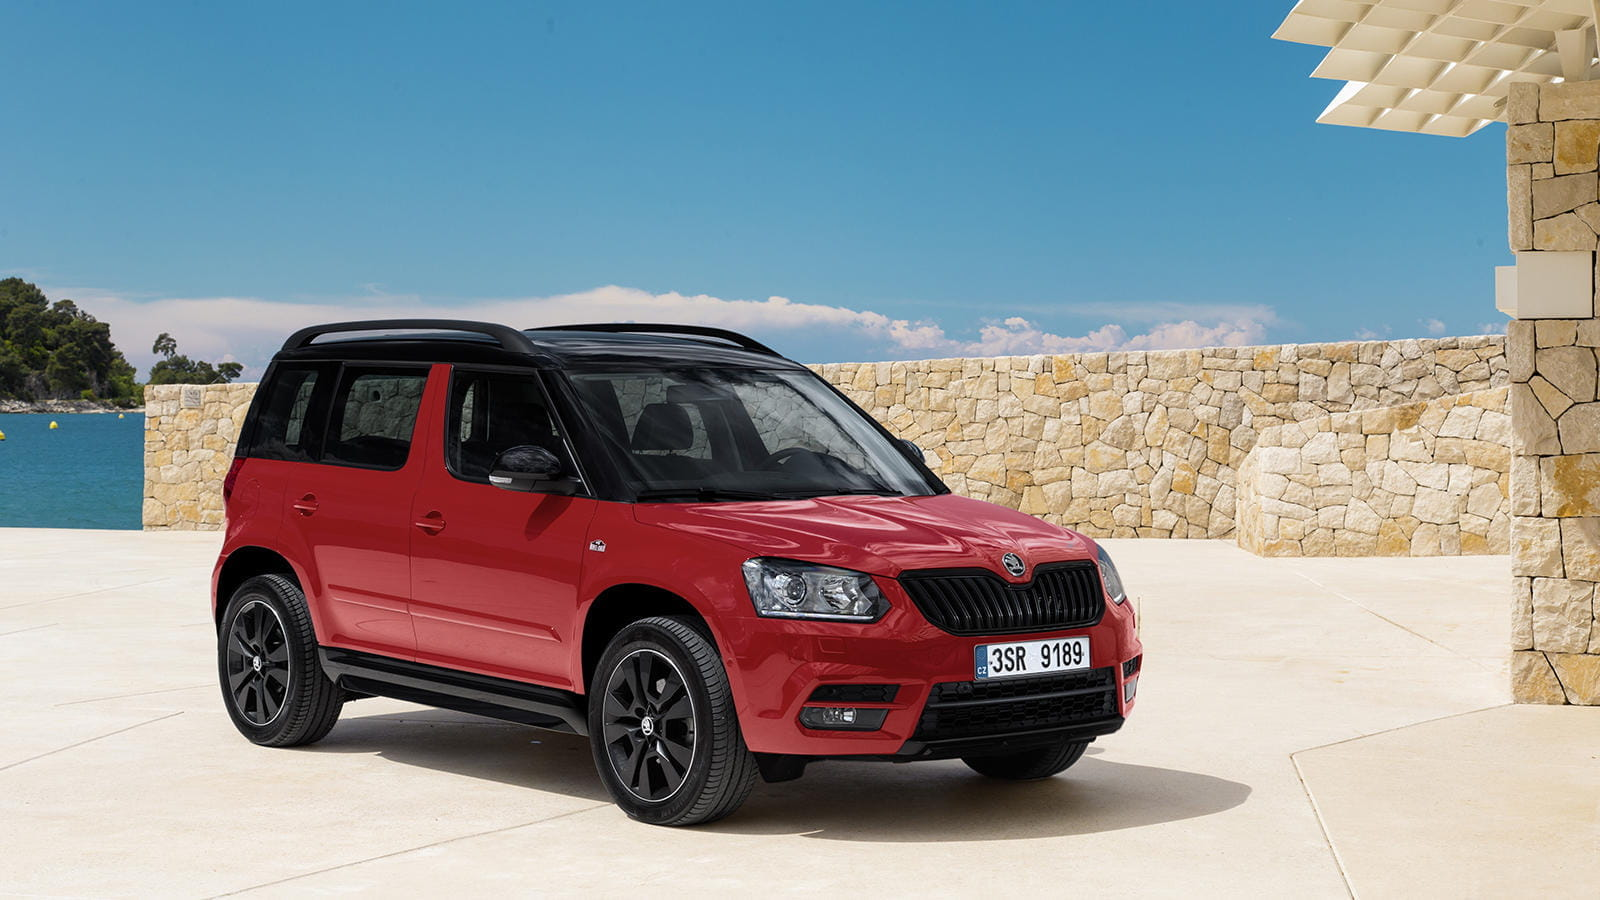 skoda yeti precios prueba ficha t cnica fotos y noticias diariomotor. Black Bedroom Furniture Sets. Home Design Ideas